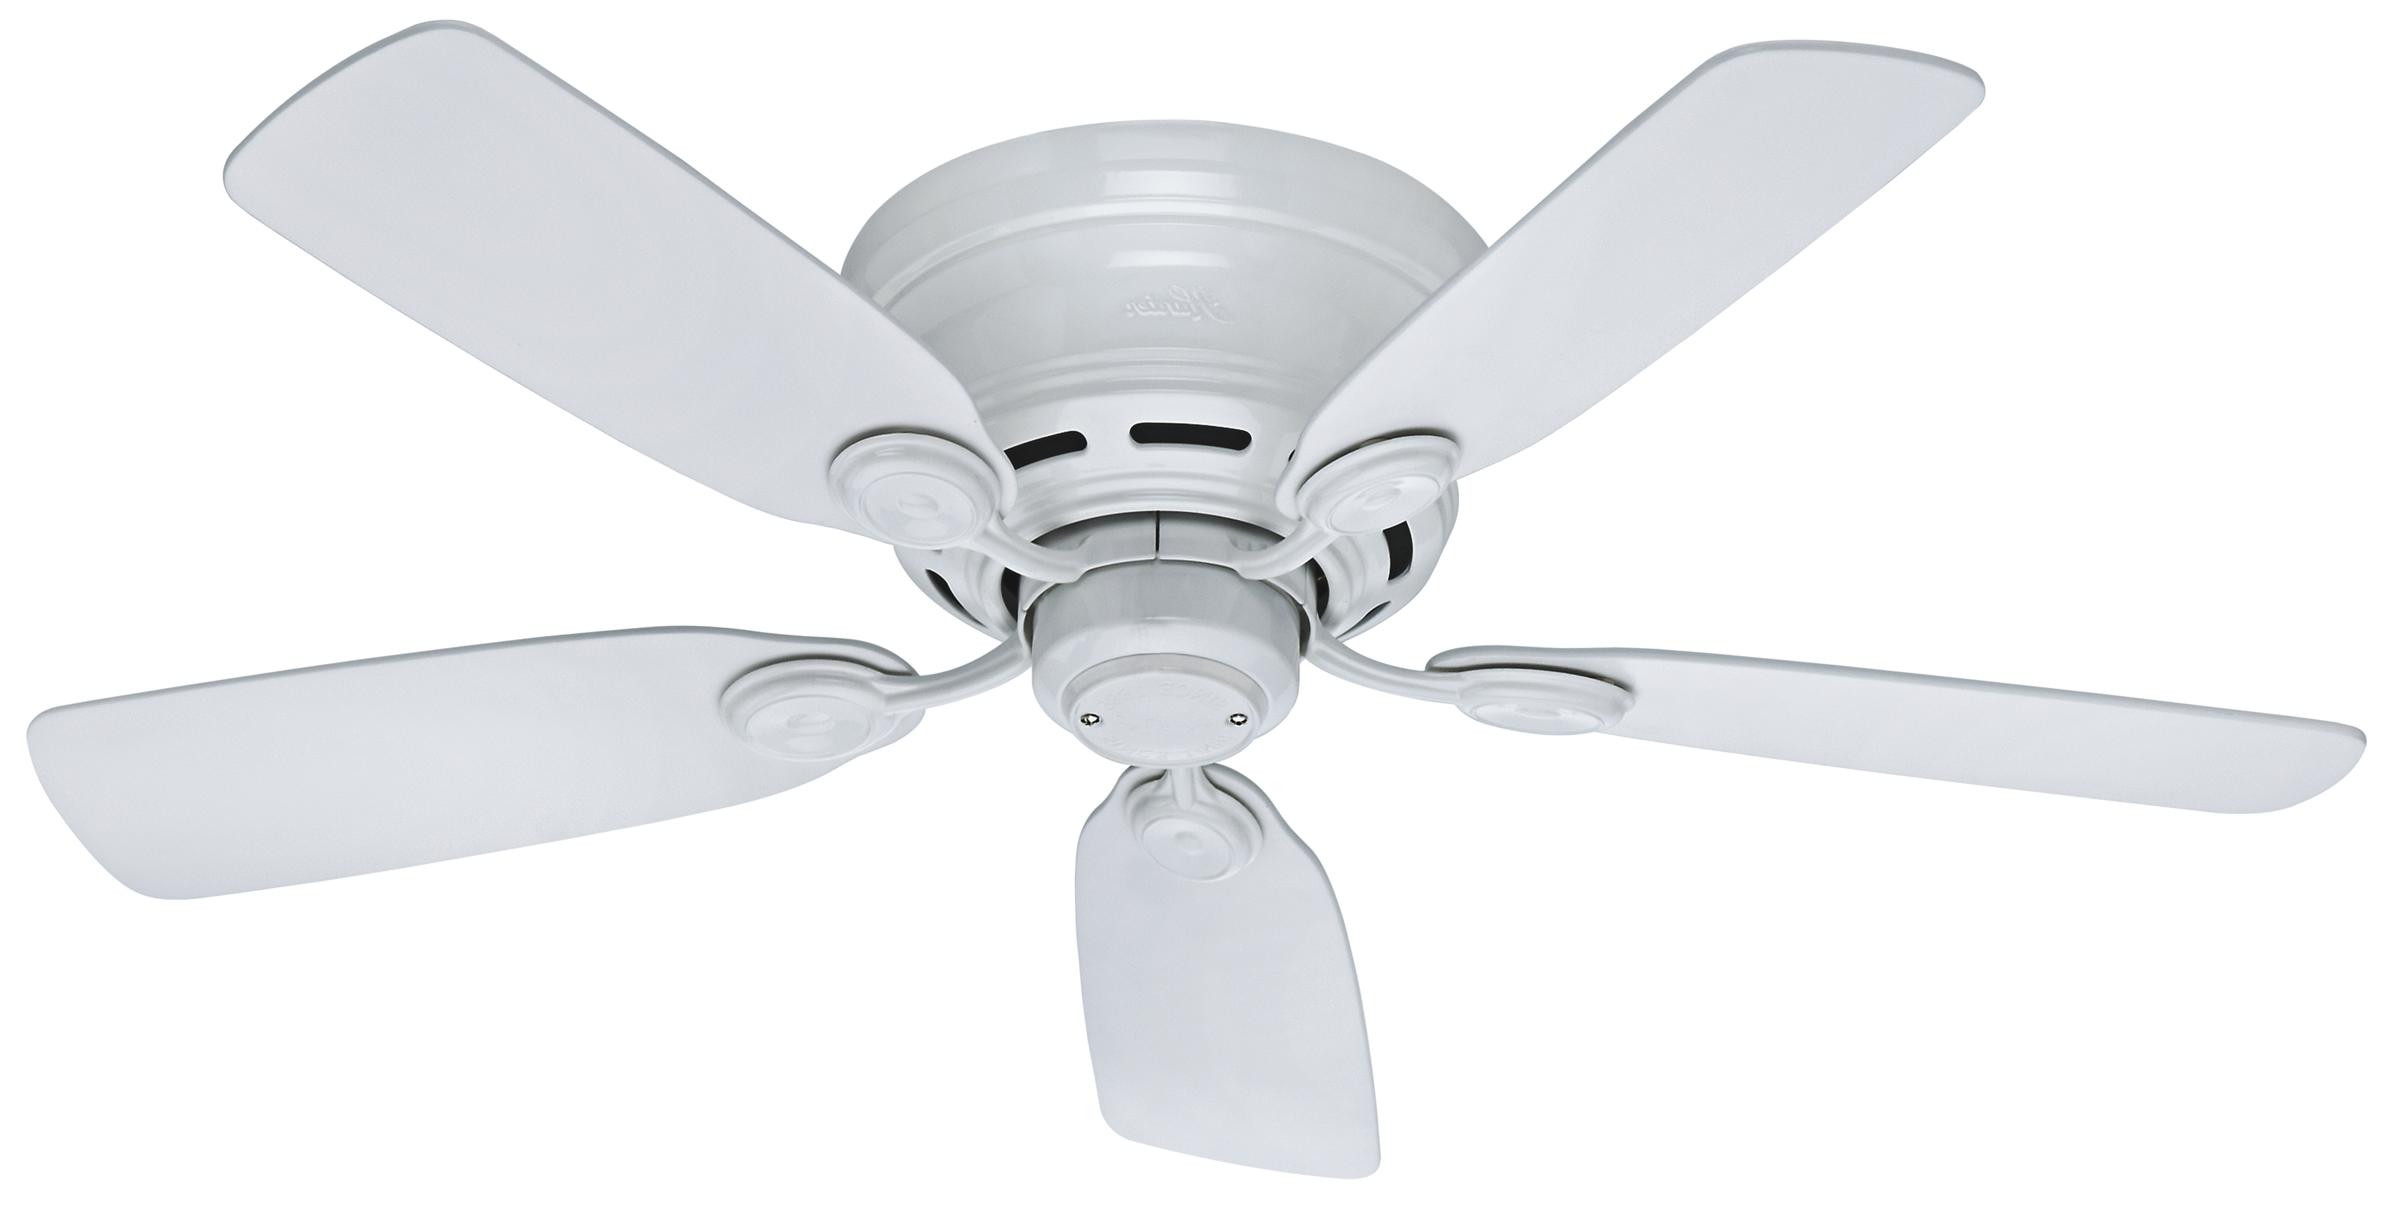 Low Profile Iv 5 Blade Ceiling Fans Throughout Most Popular Hunter 42 Inch Low Profile Iv Ceiling Fan Model (View 16 of 20)